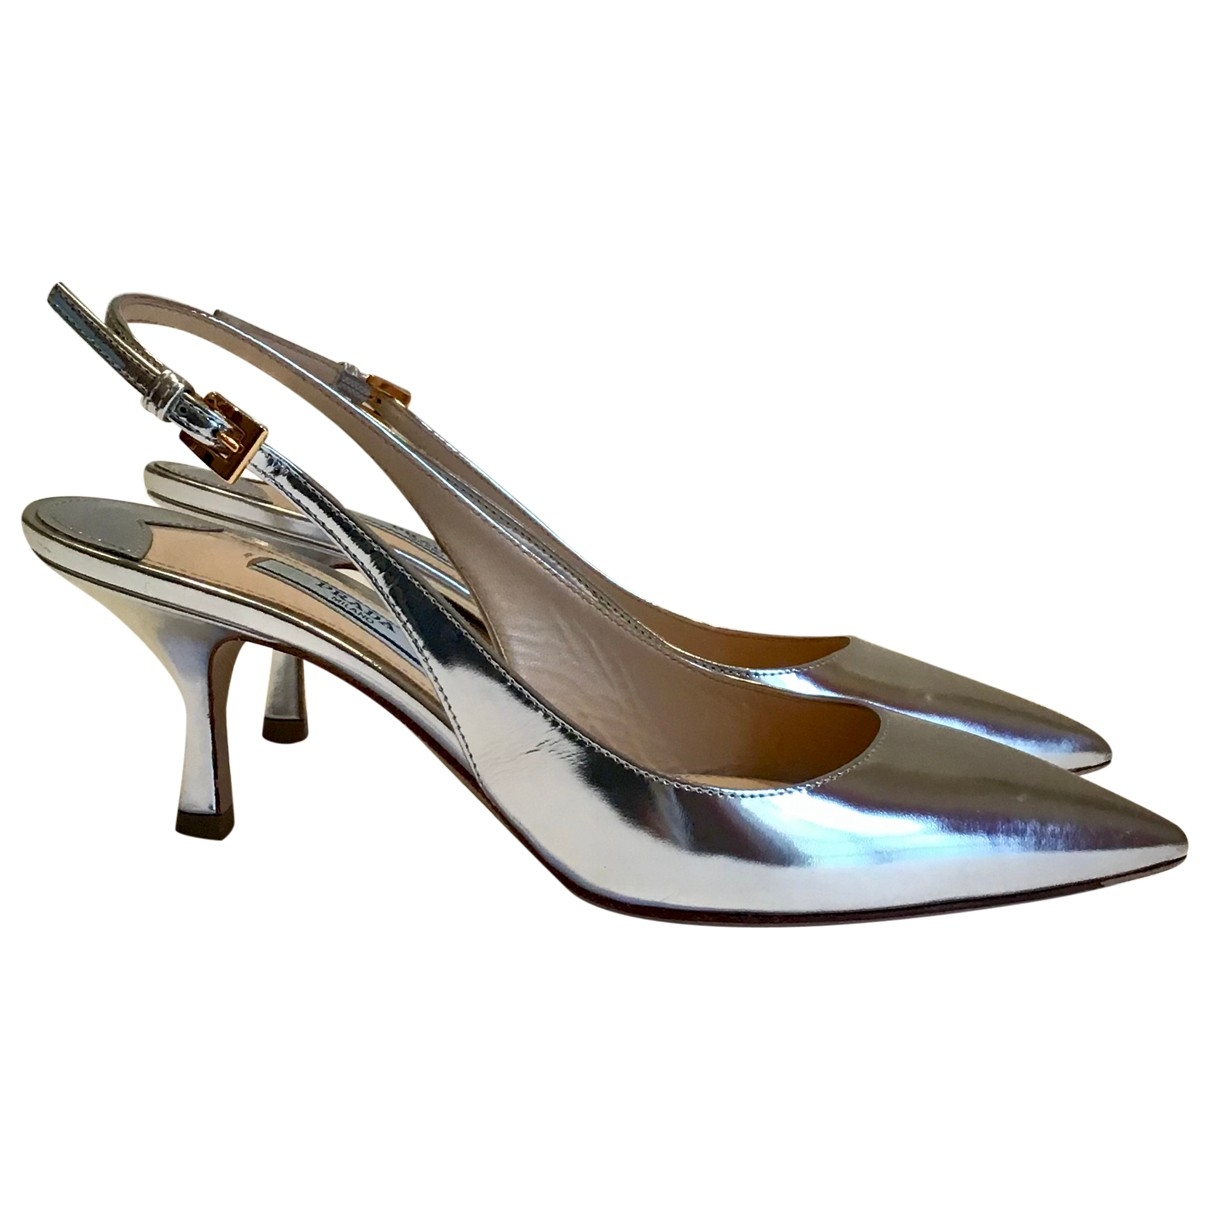 Prada N Silver Patent leather Heels for Women 36 EU